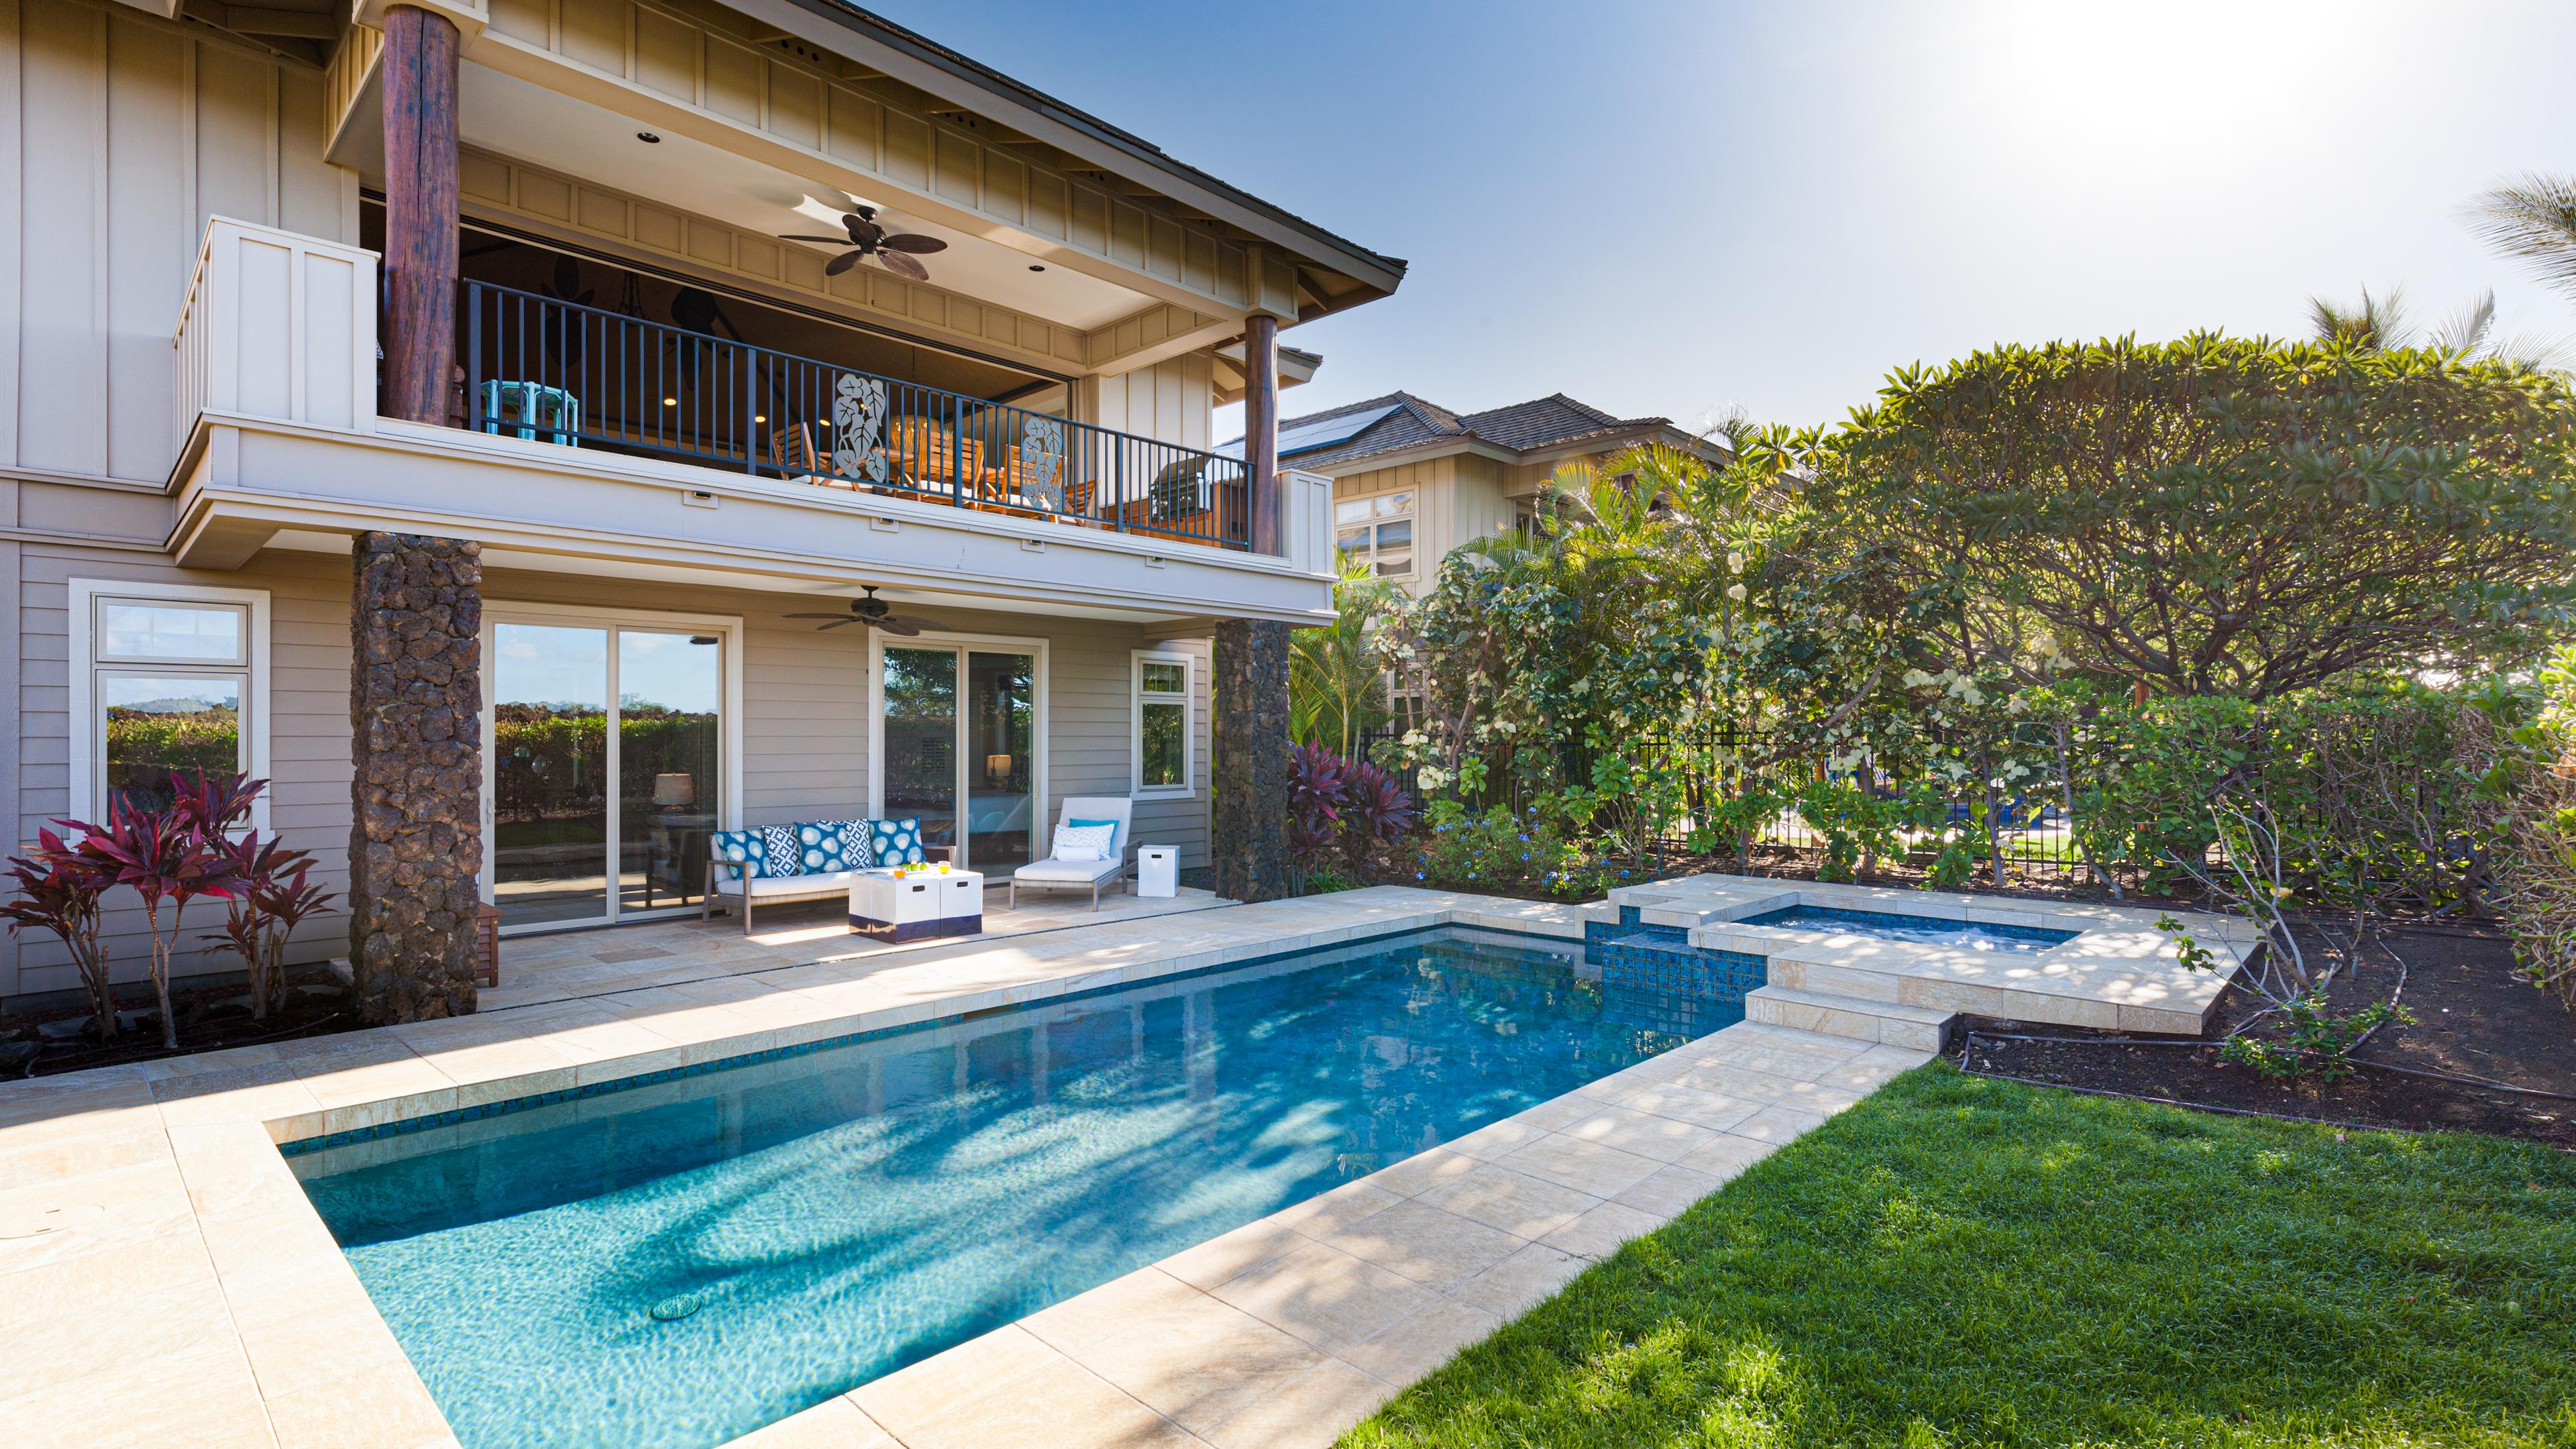 Enjoy a luxurious home with private pool and spa